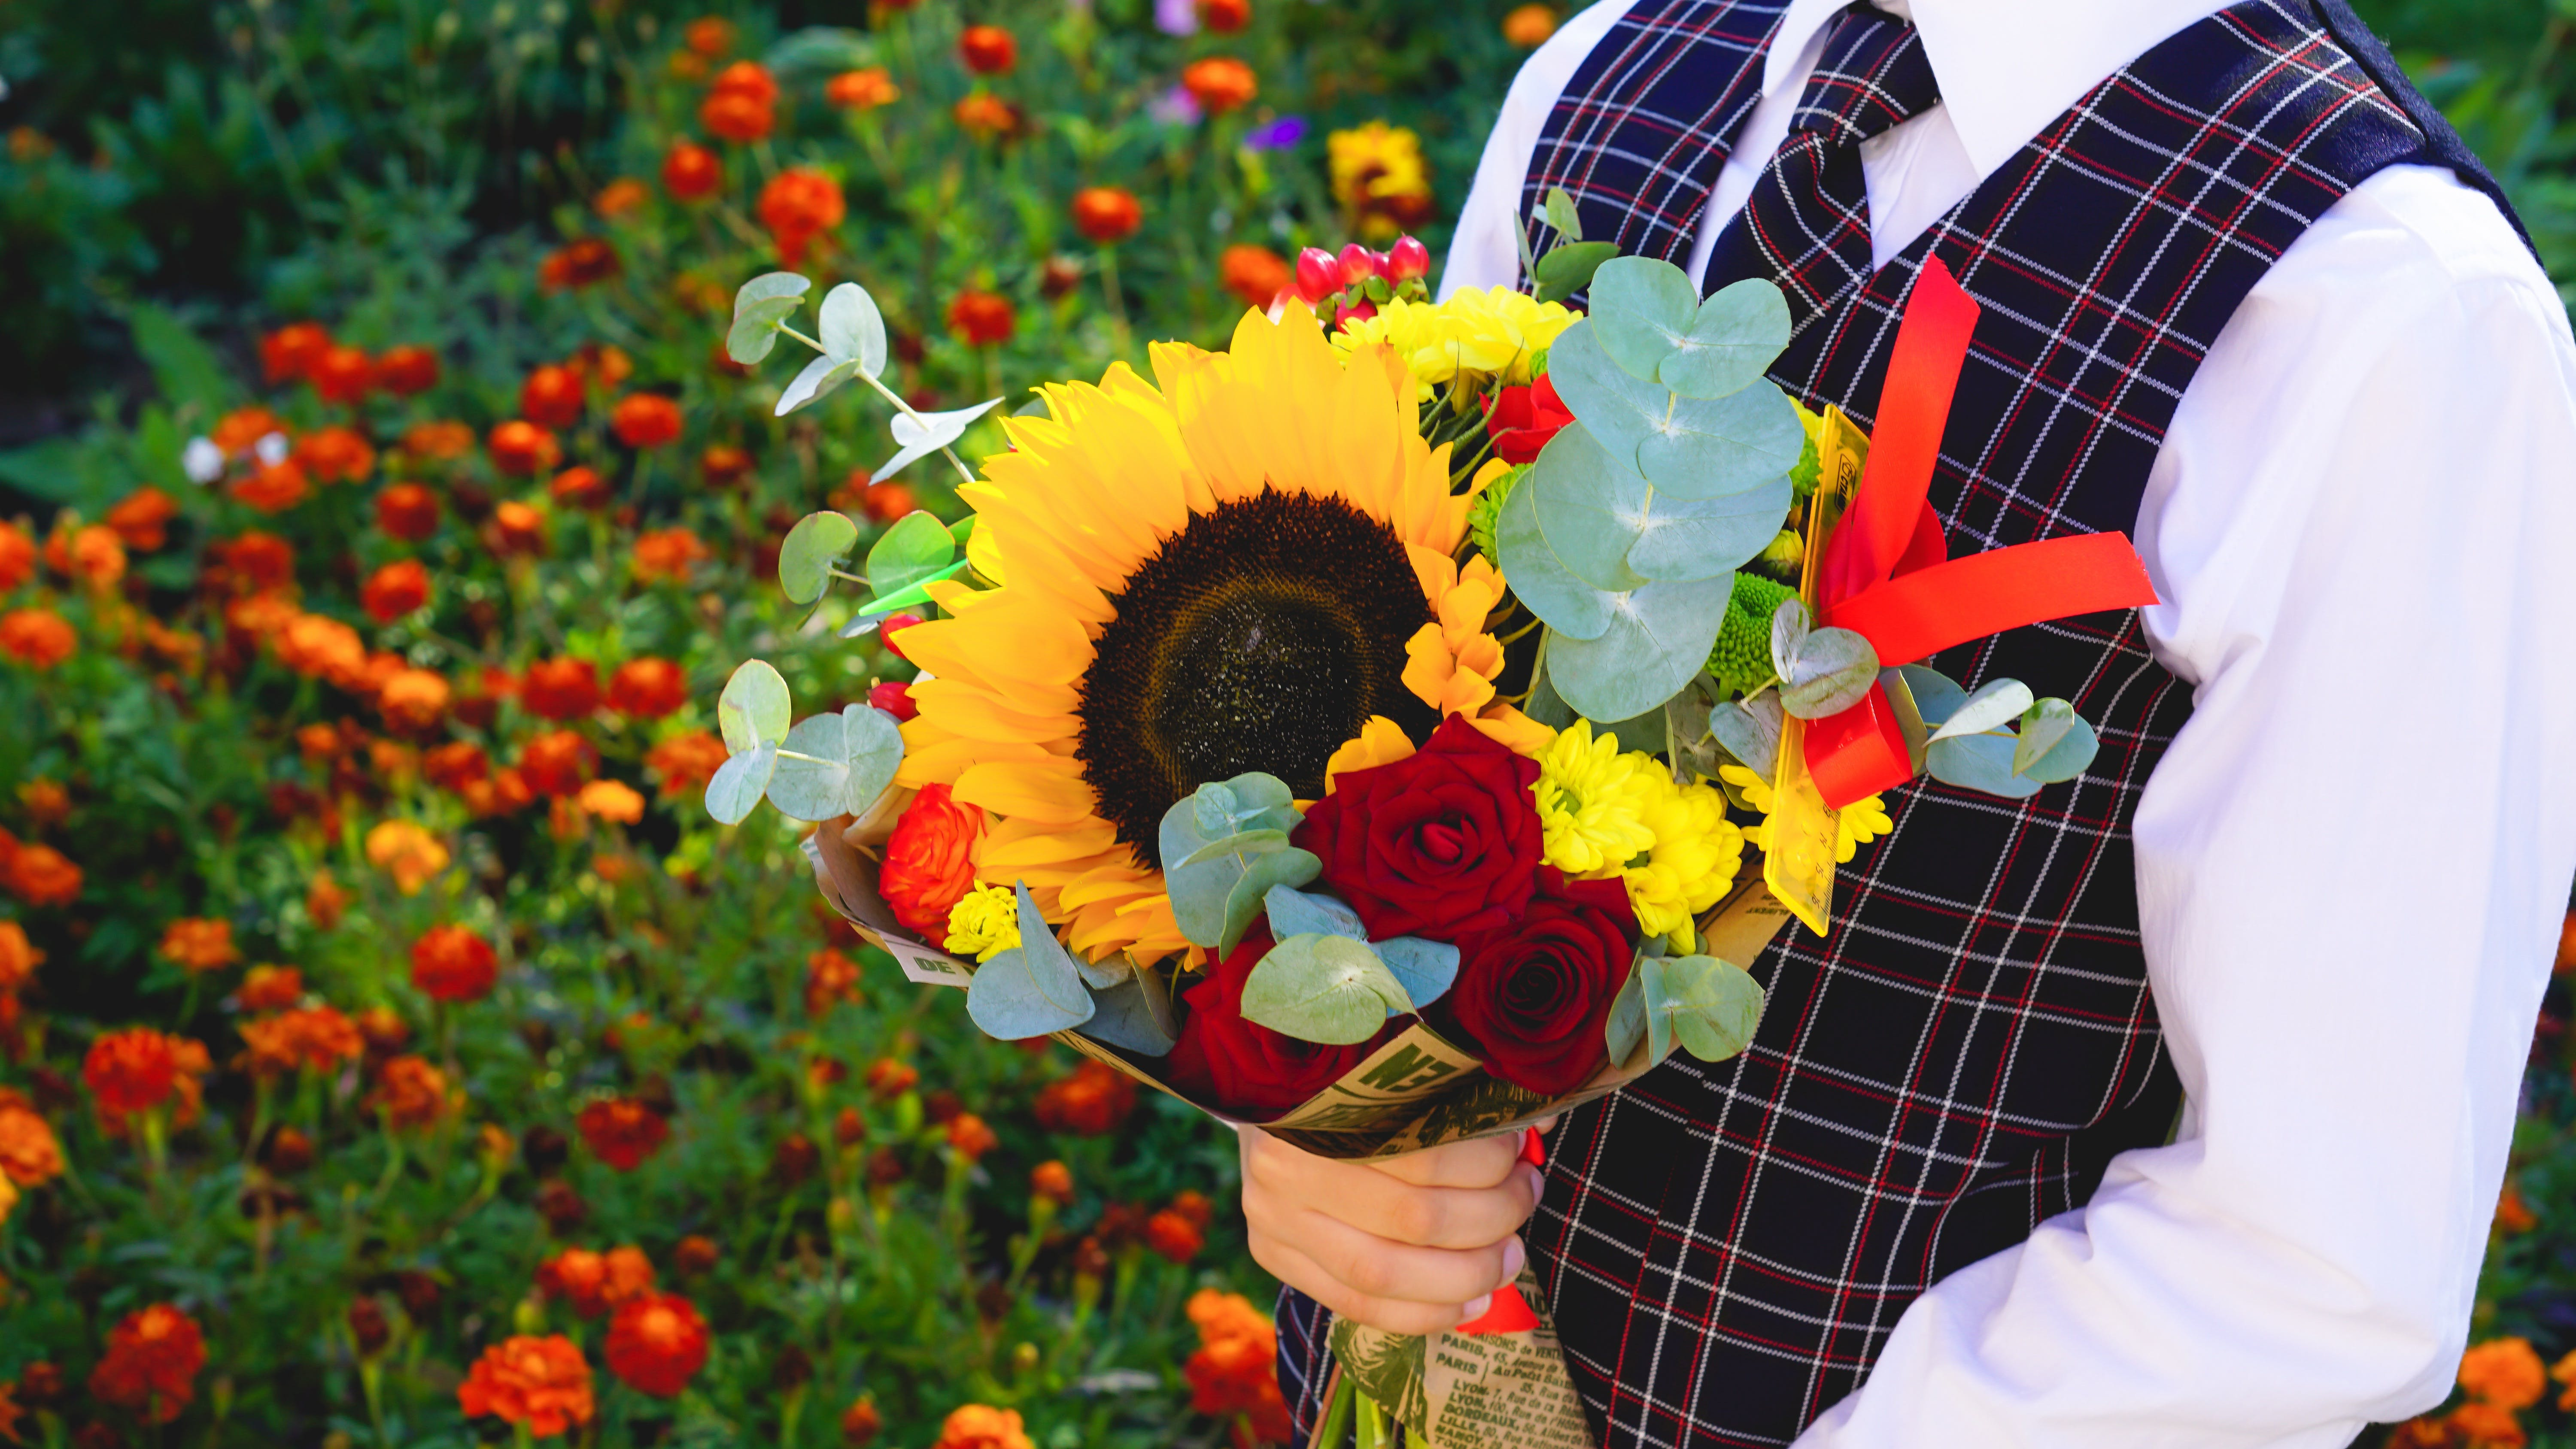 Person Holding Yellow Sunflower Bouquet